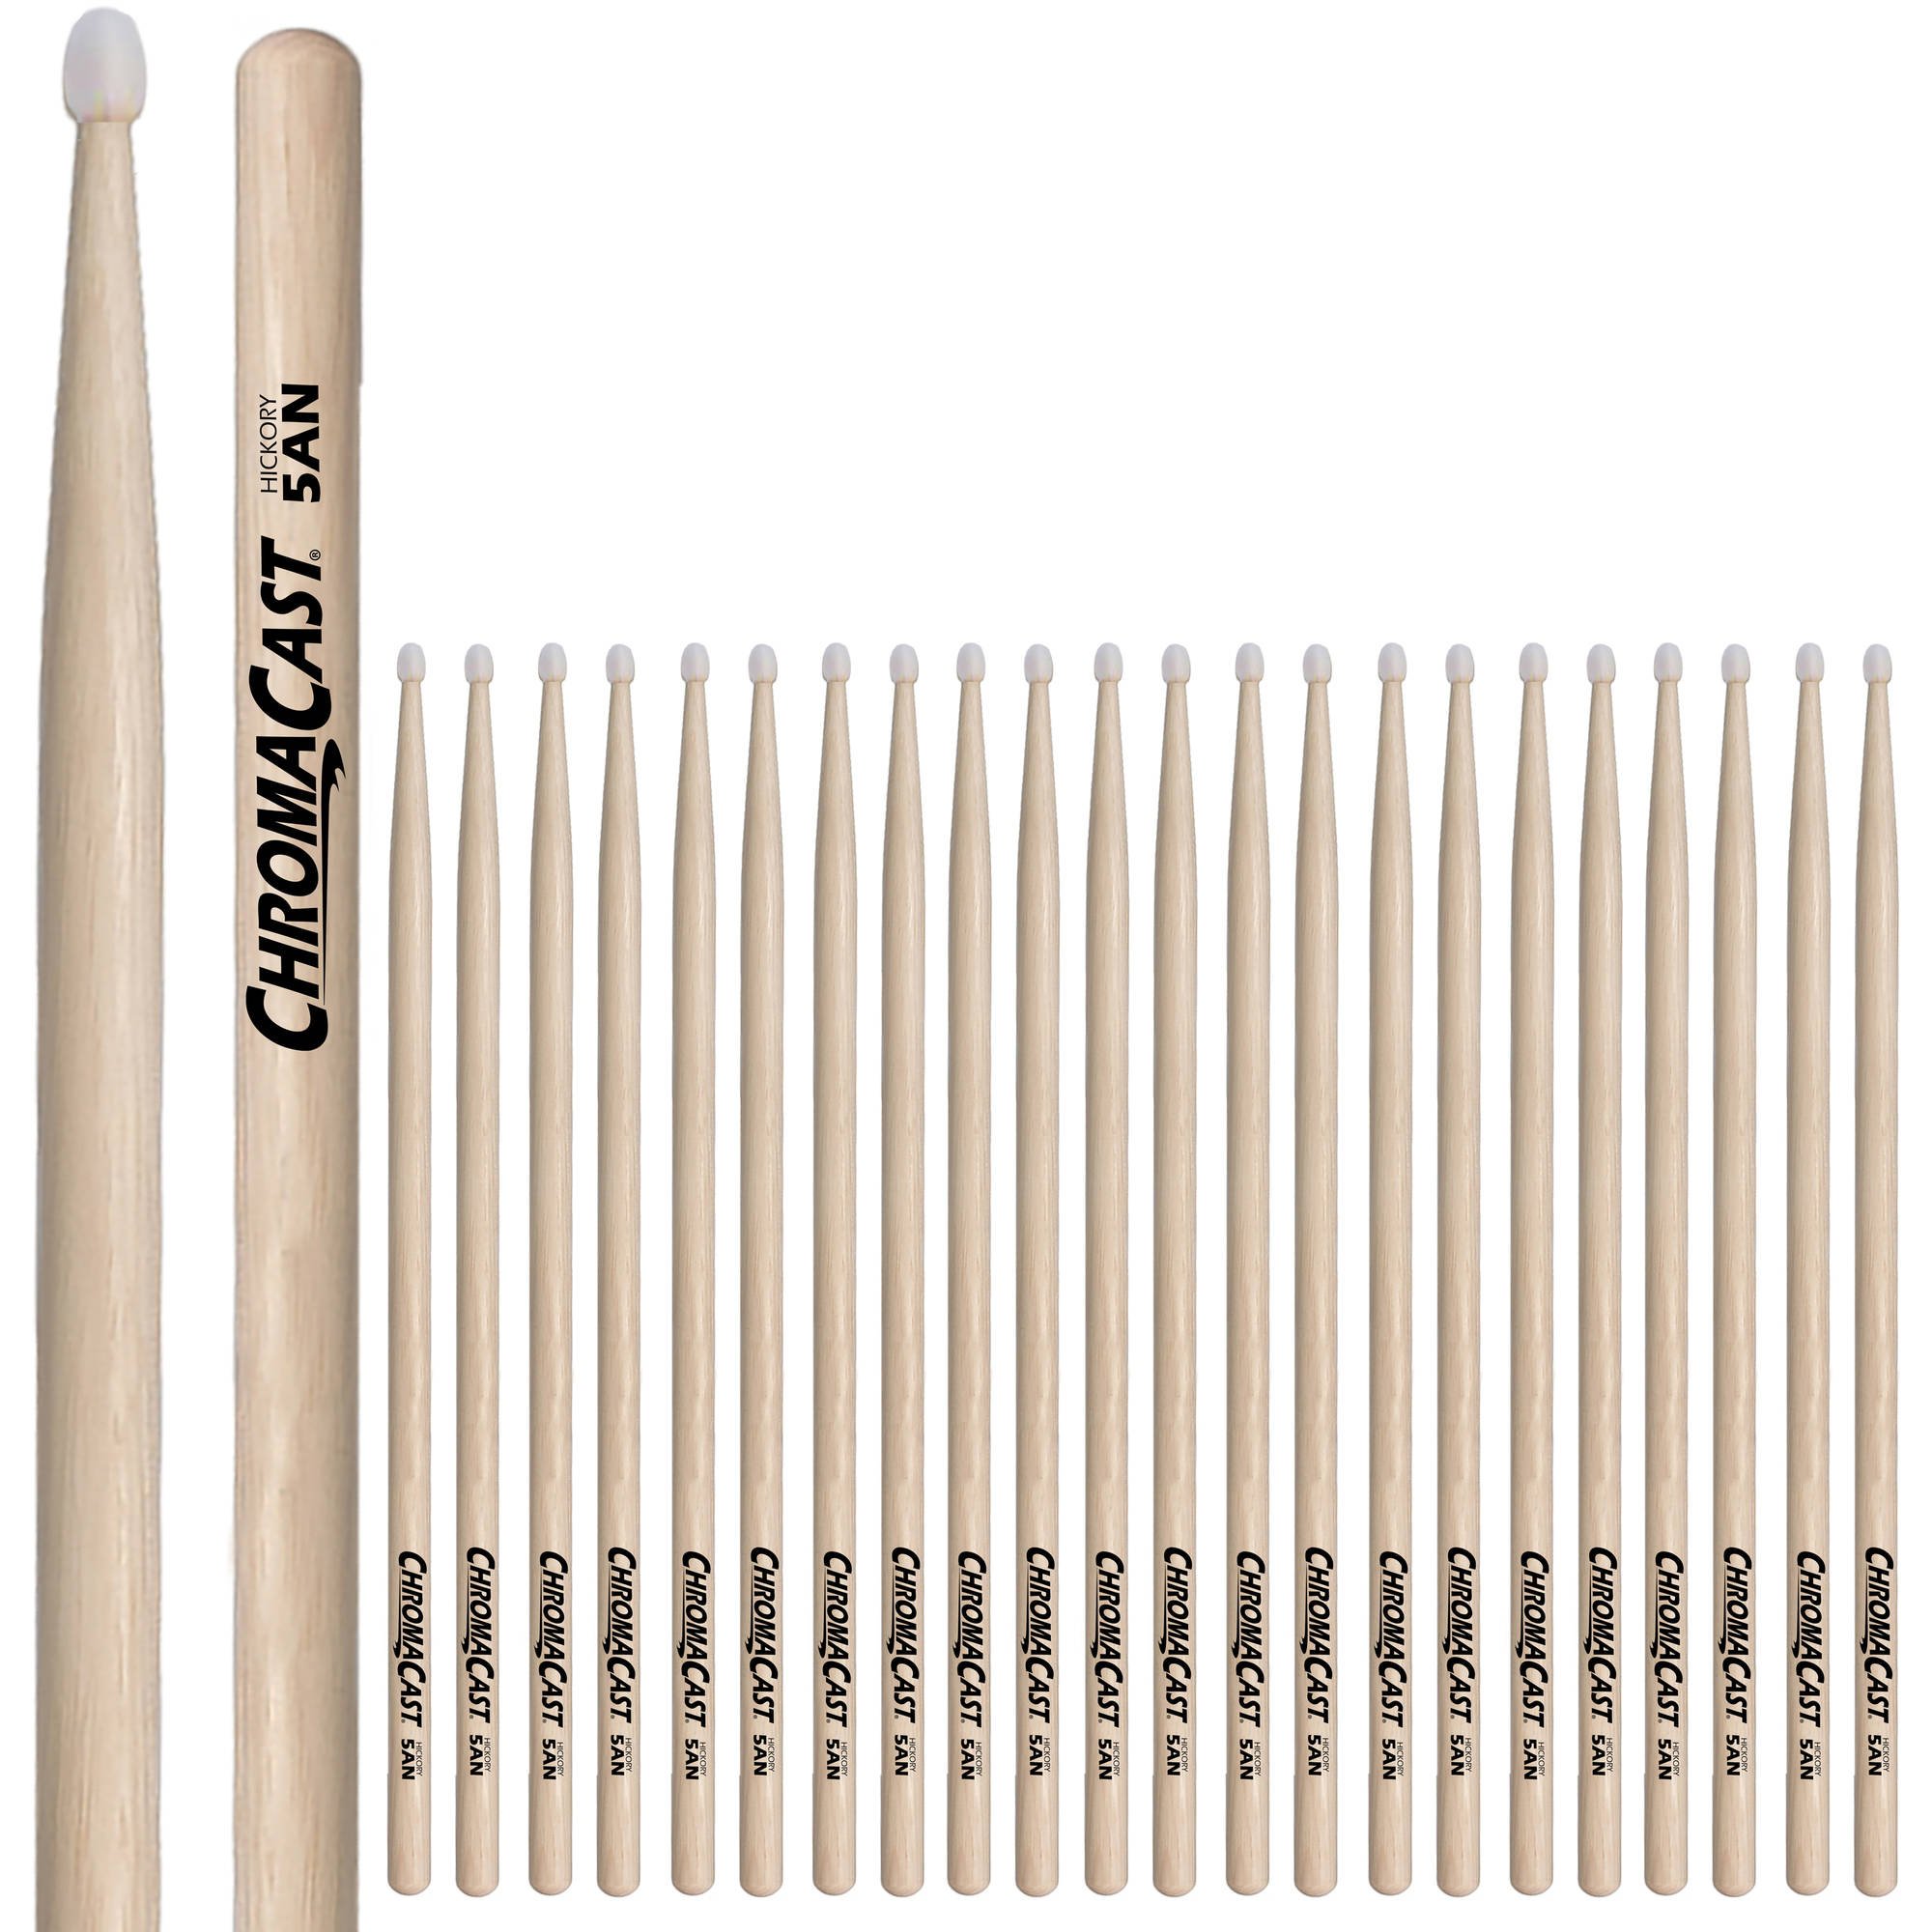 ChromaCast 5A Hickory Nylon-Tipped Drumsticks, 12 Pairs by ChromaCast